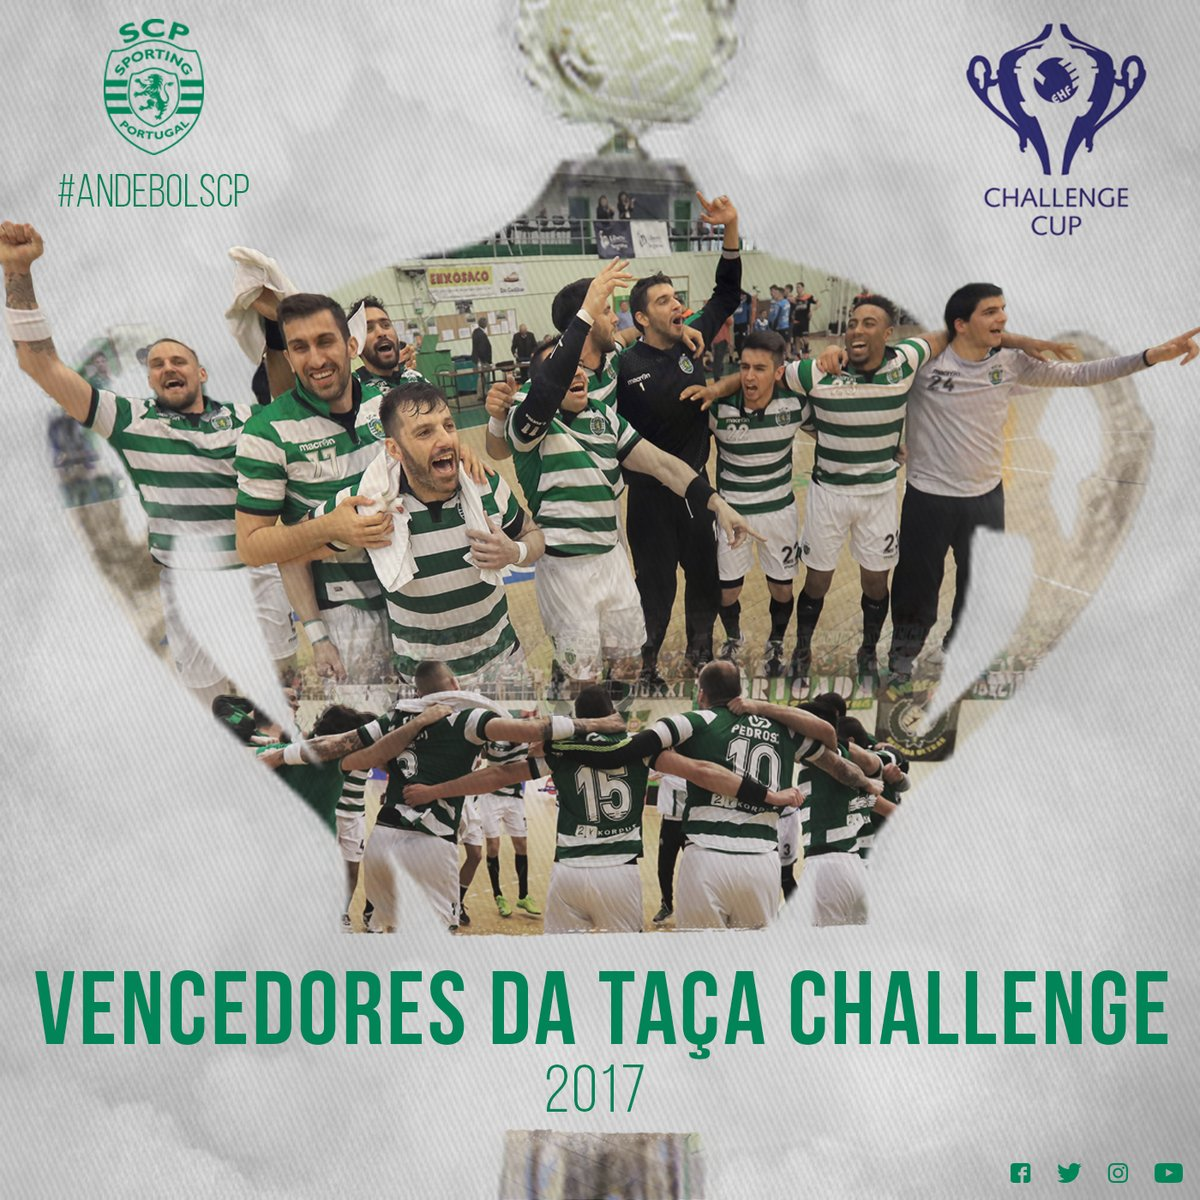 sporting vencedores